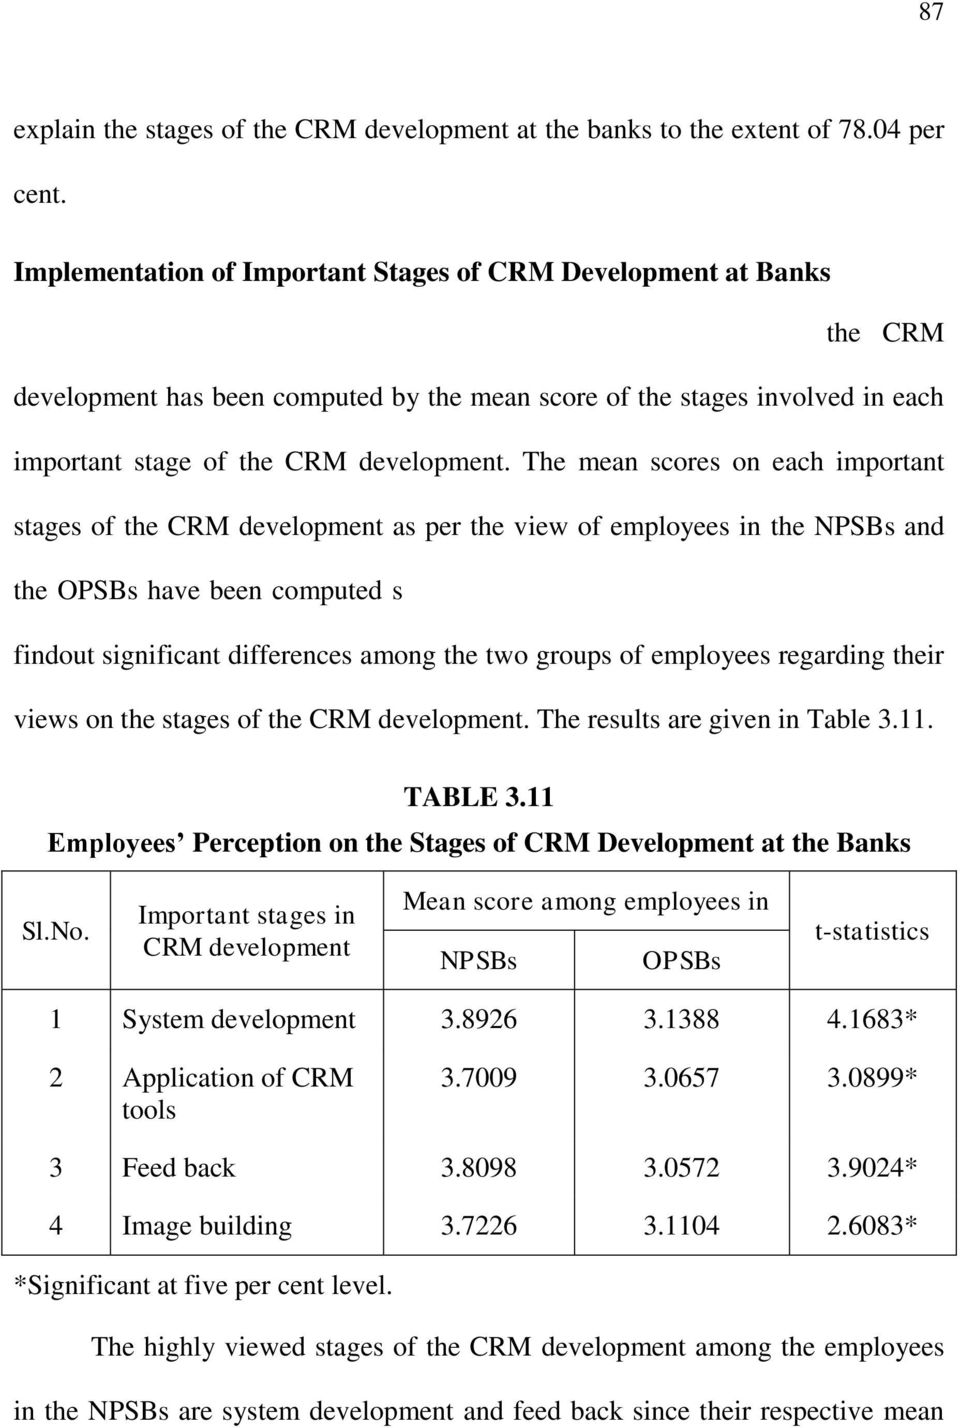 each important stage of the CRM development. The mean scores on each important stages of the CRM development as per the view of employees in the NPSBs and the OPSBs have been computed separately.